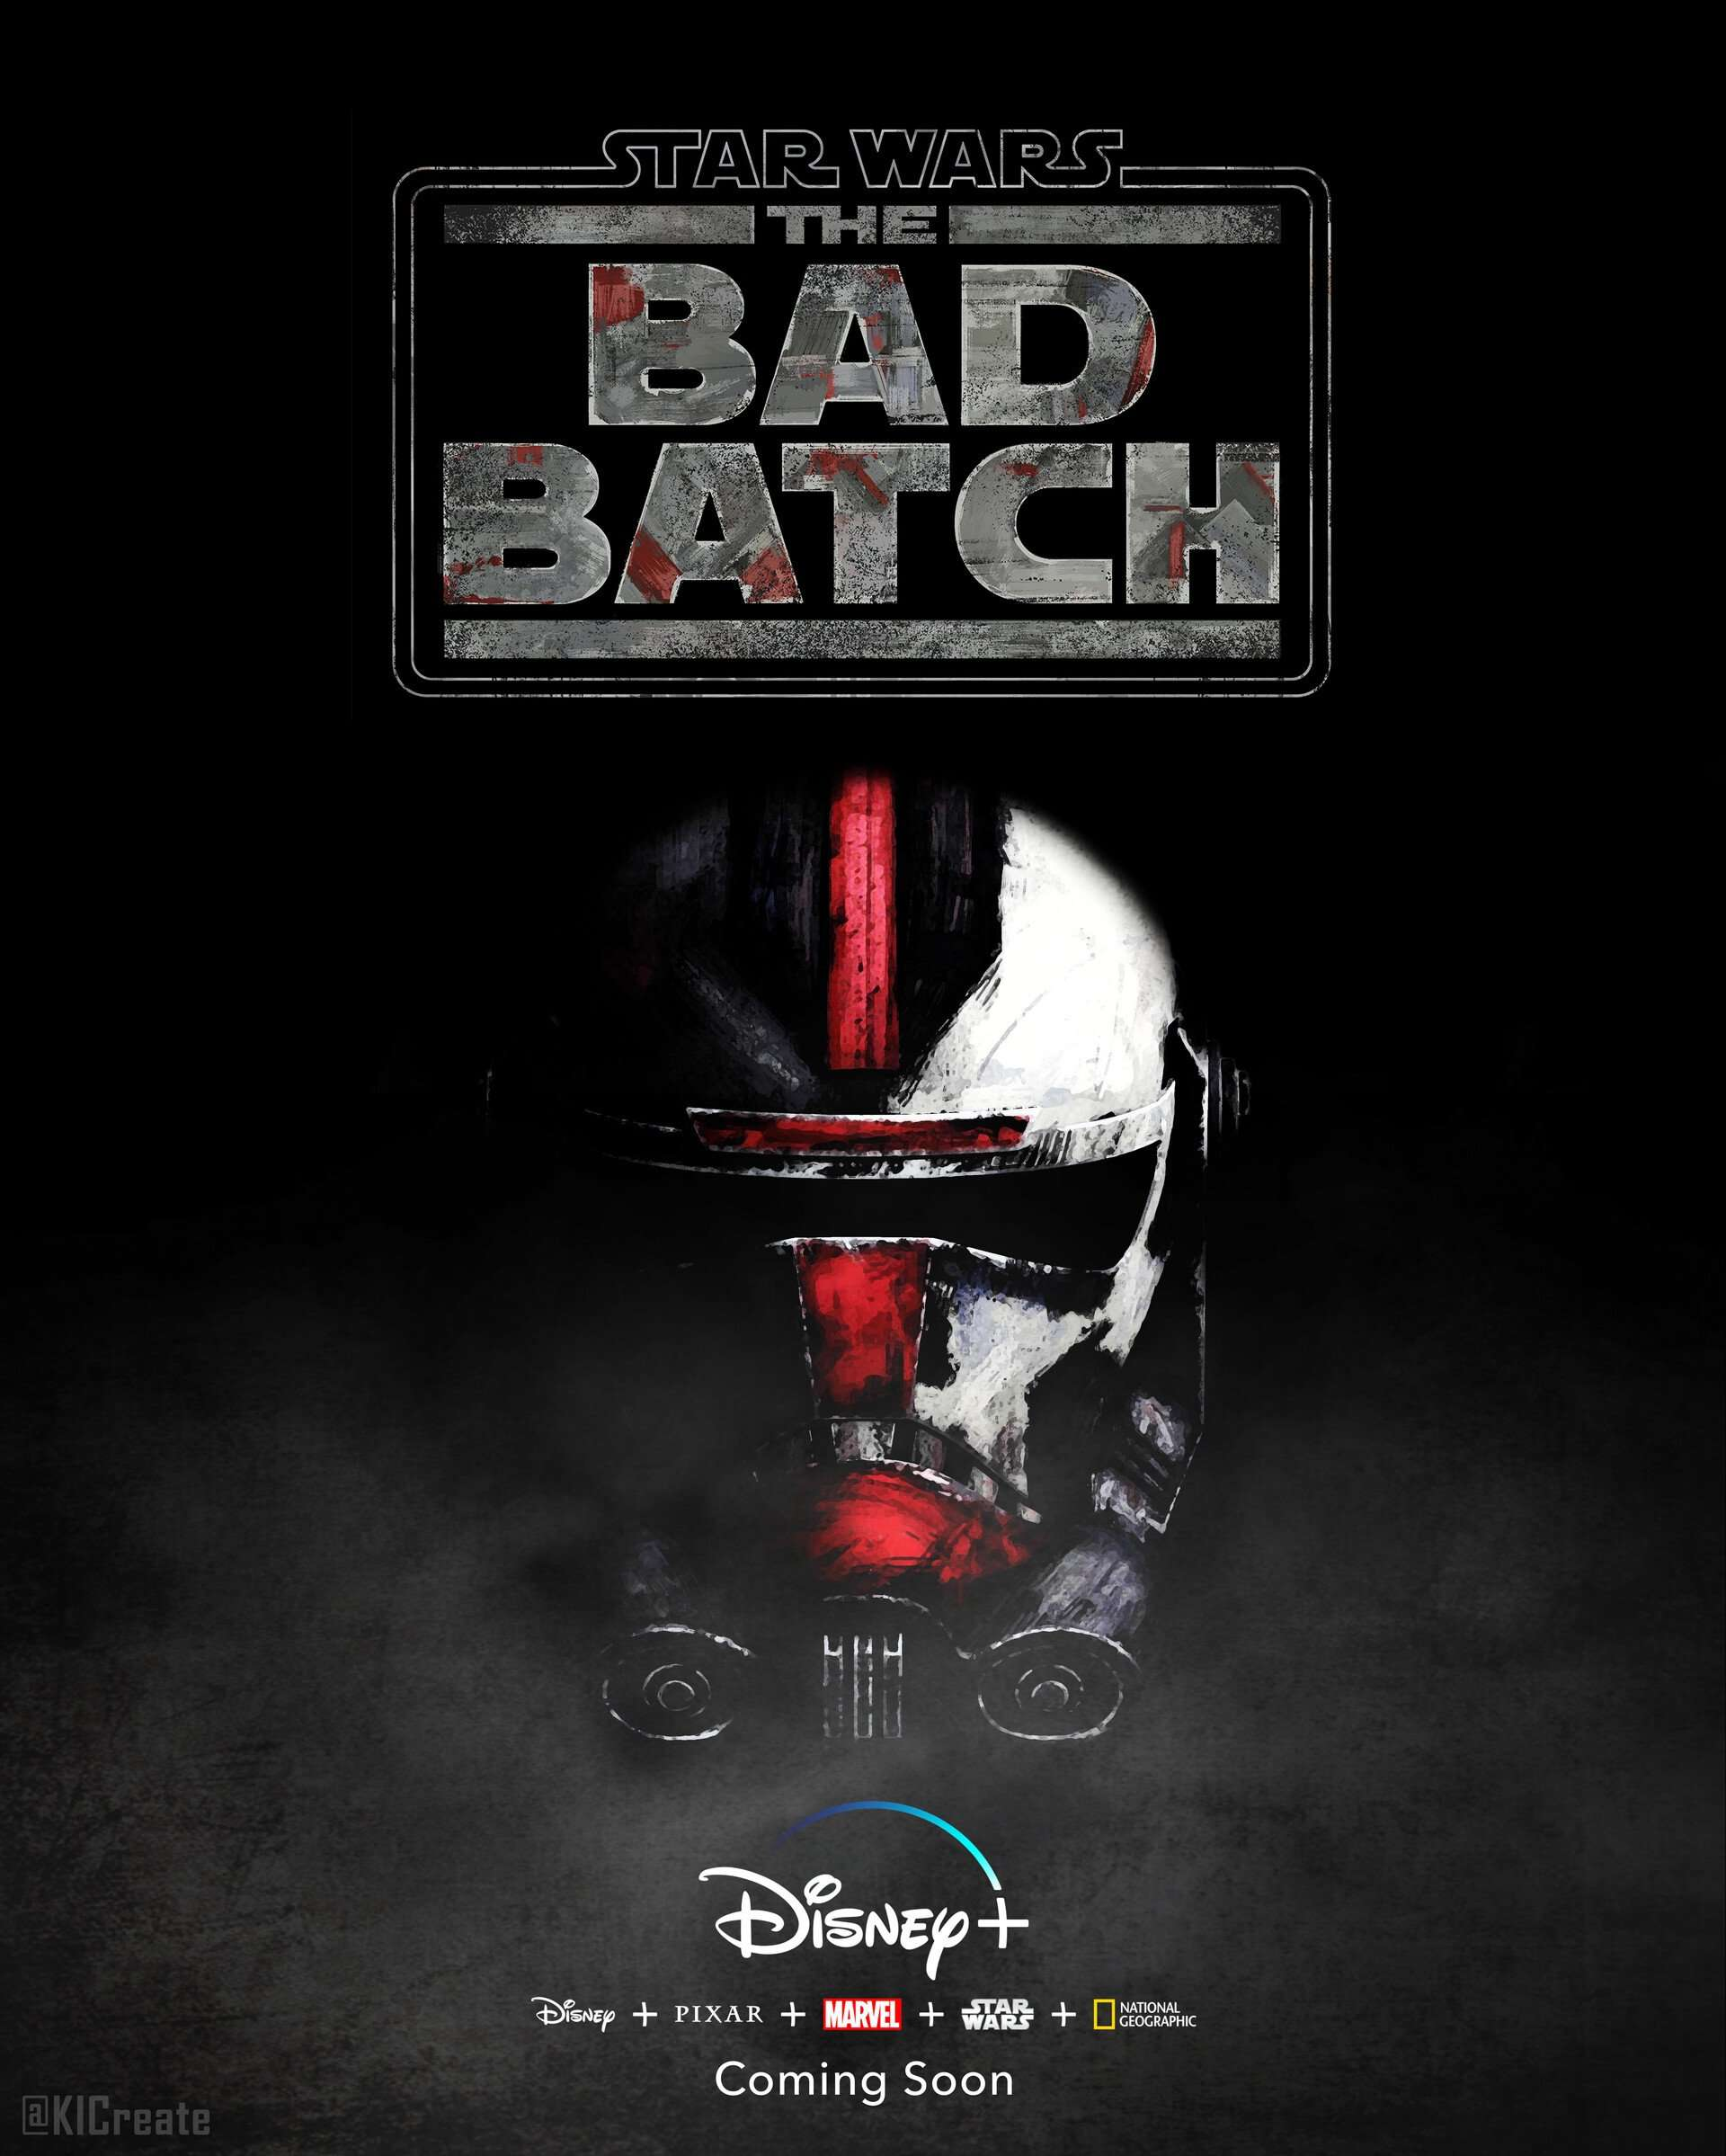 Star Wars The Bad Batch Poster